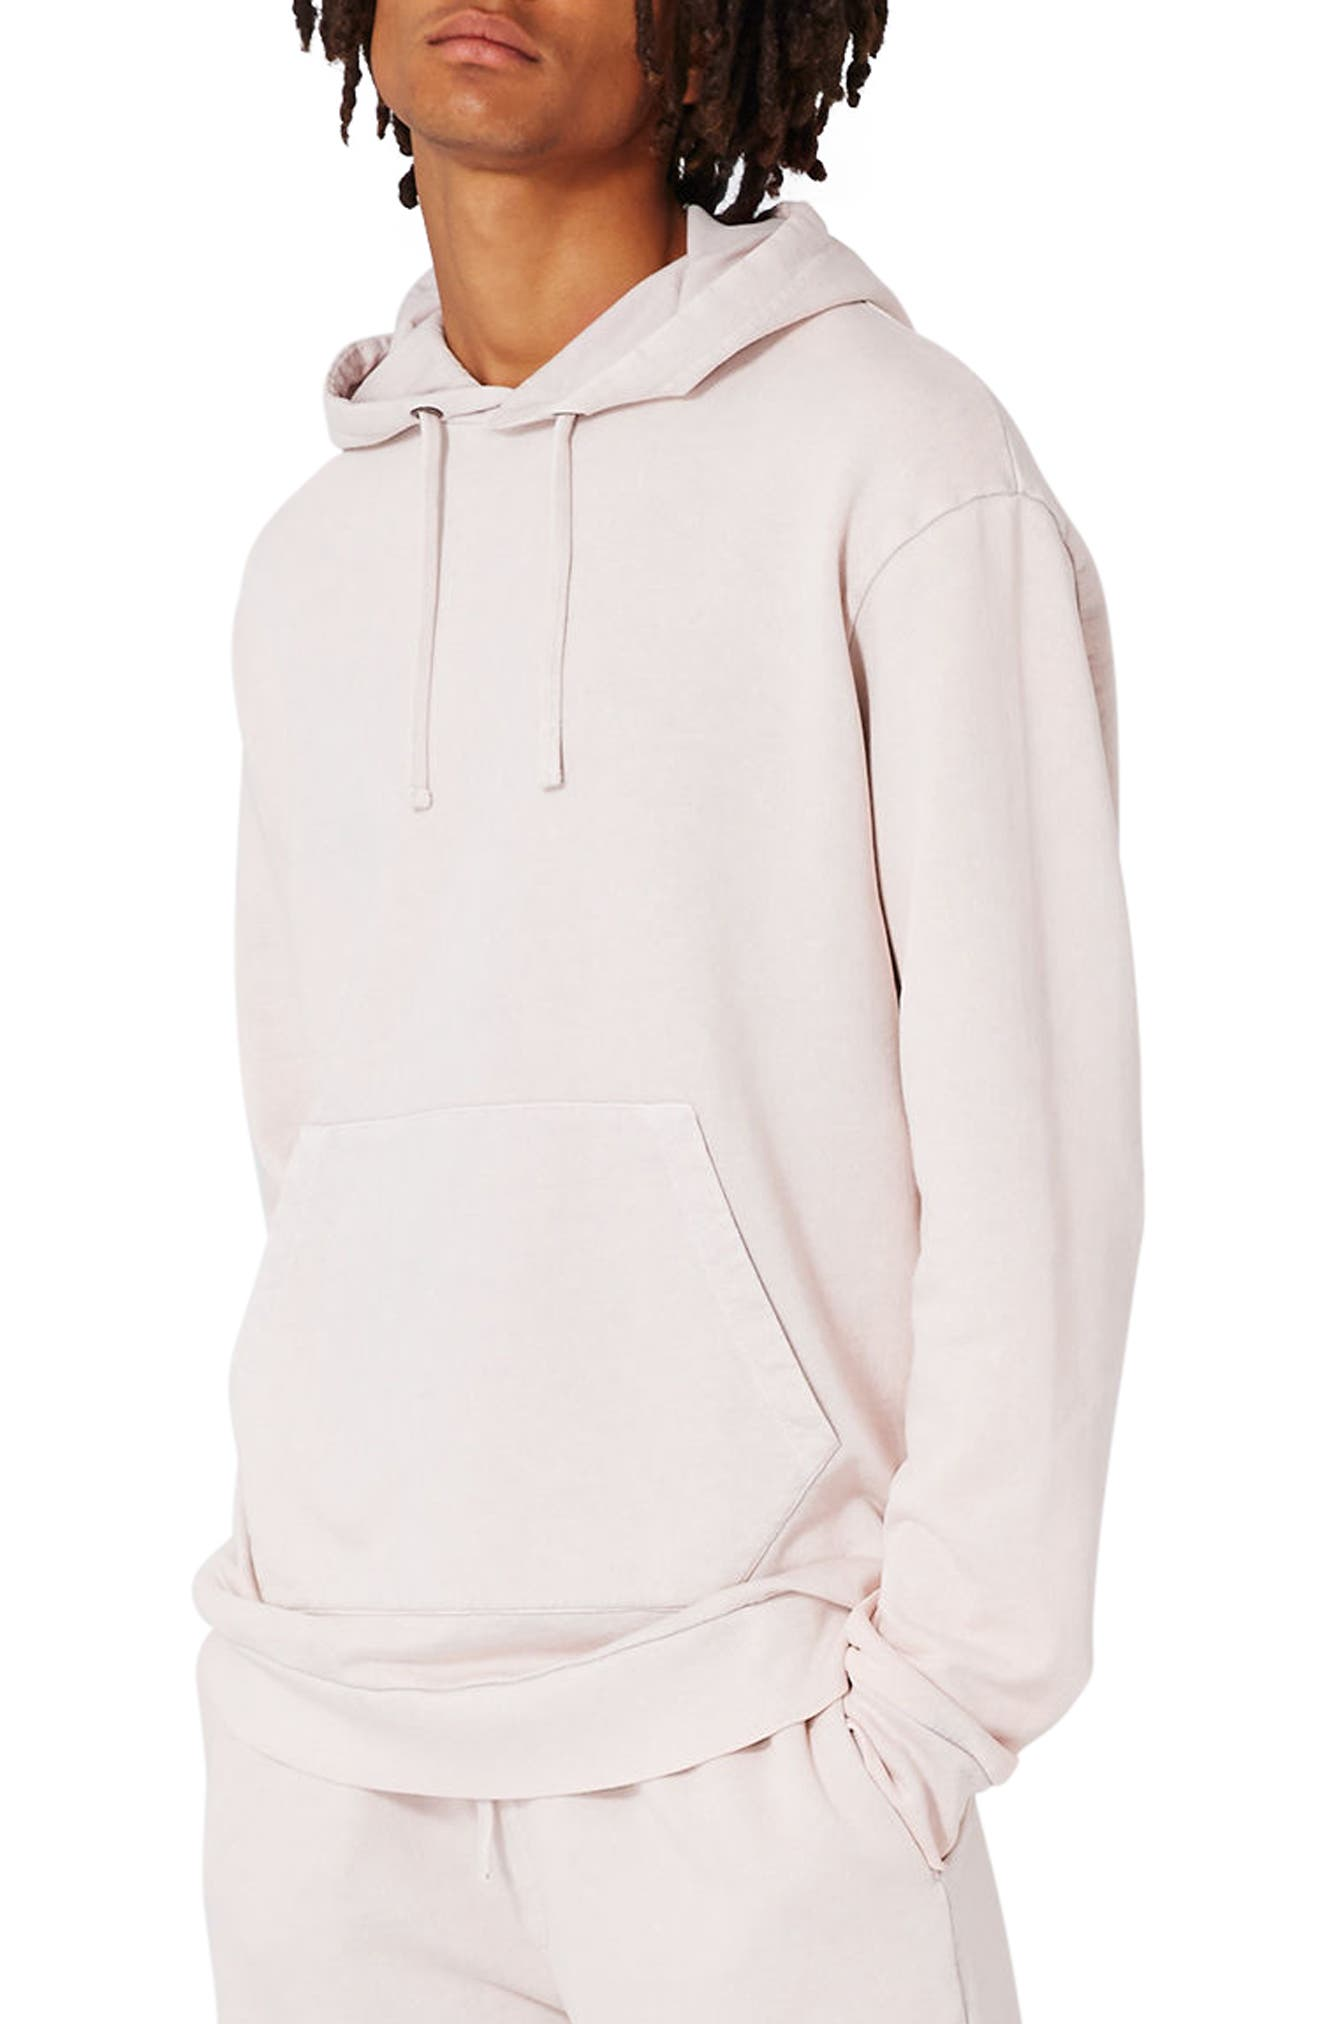 Topman LTD Collection Oversize Washed Hoodie